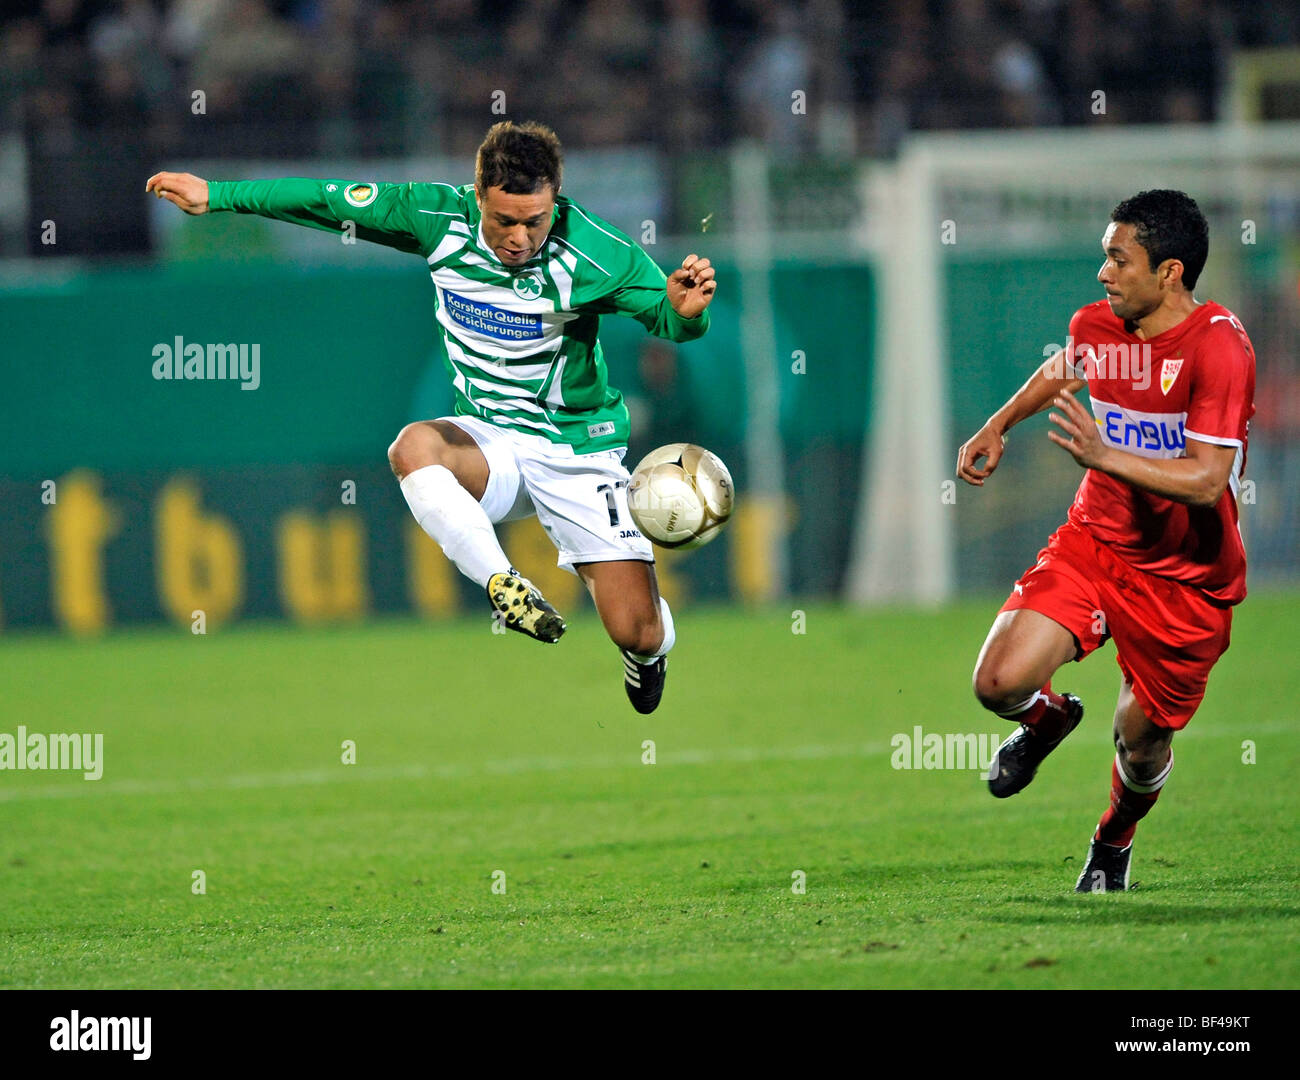 Duel, Stephan Schroeck, SpVgg Greuther Furth, vs. Elson, VfB Stuttgart, right Stock Photo